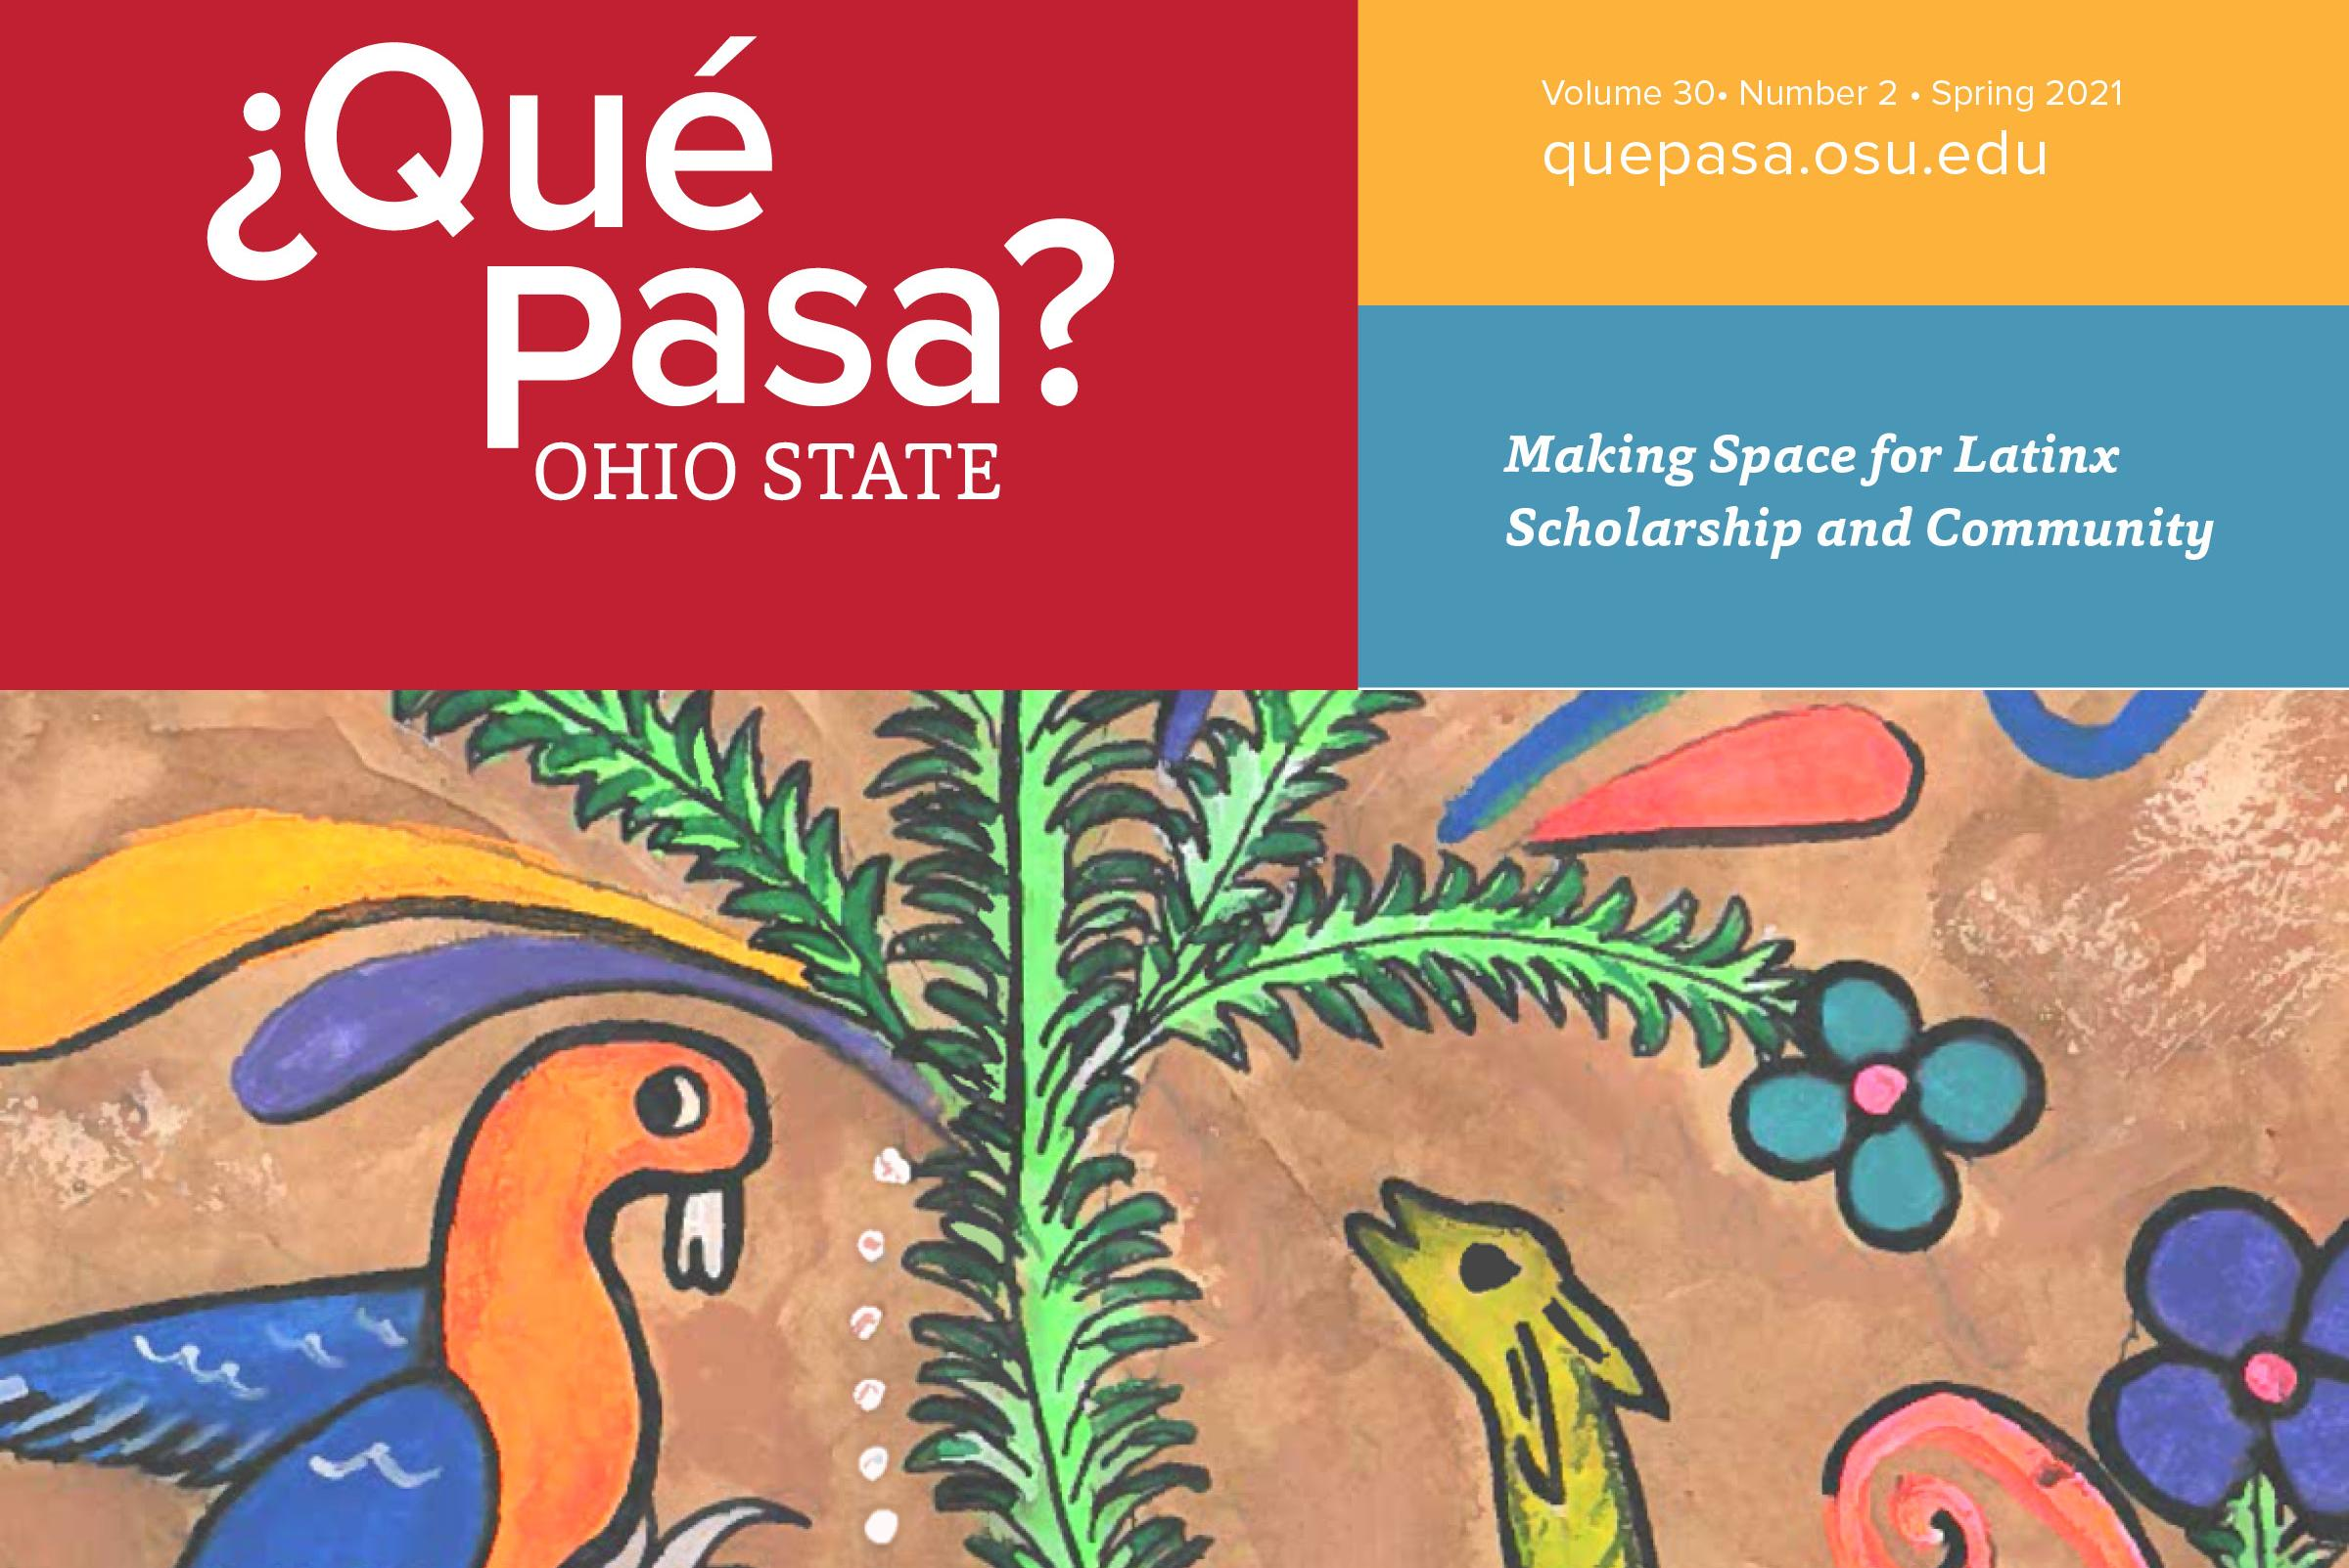 Que Pasa Spring 2021 cover with drawing of birds and animals and plants.